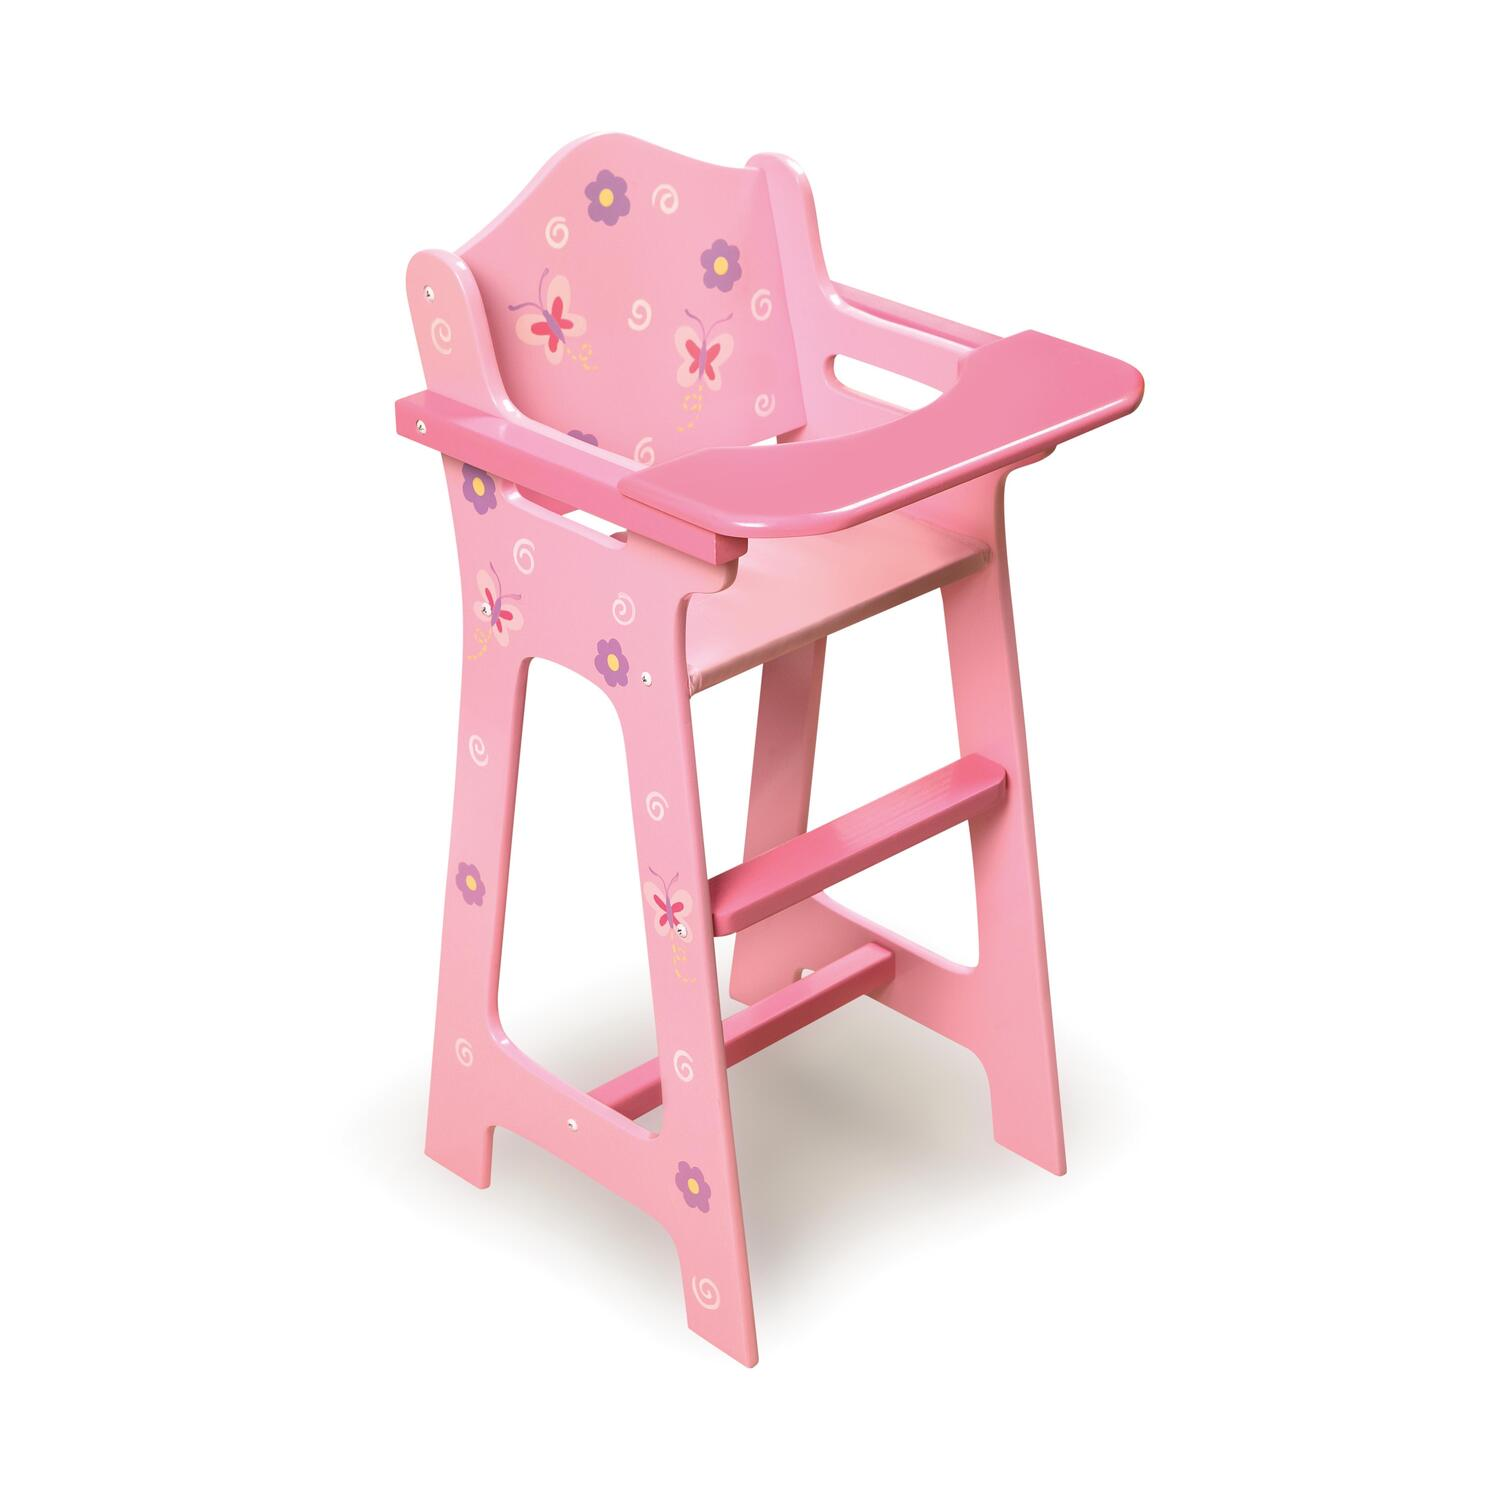 Blossoms Butterflies Doll Set High Chair With Bunk Bed